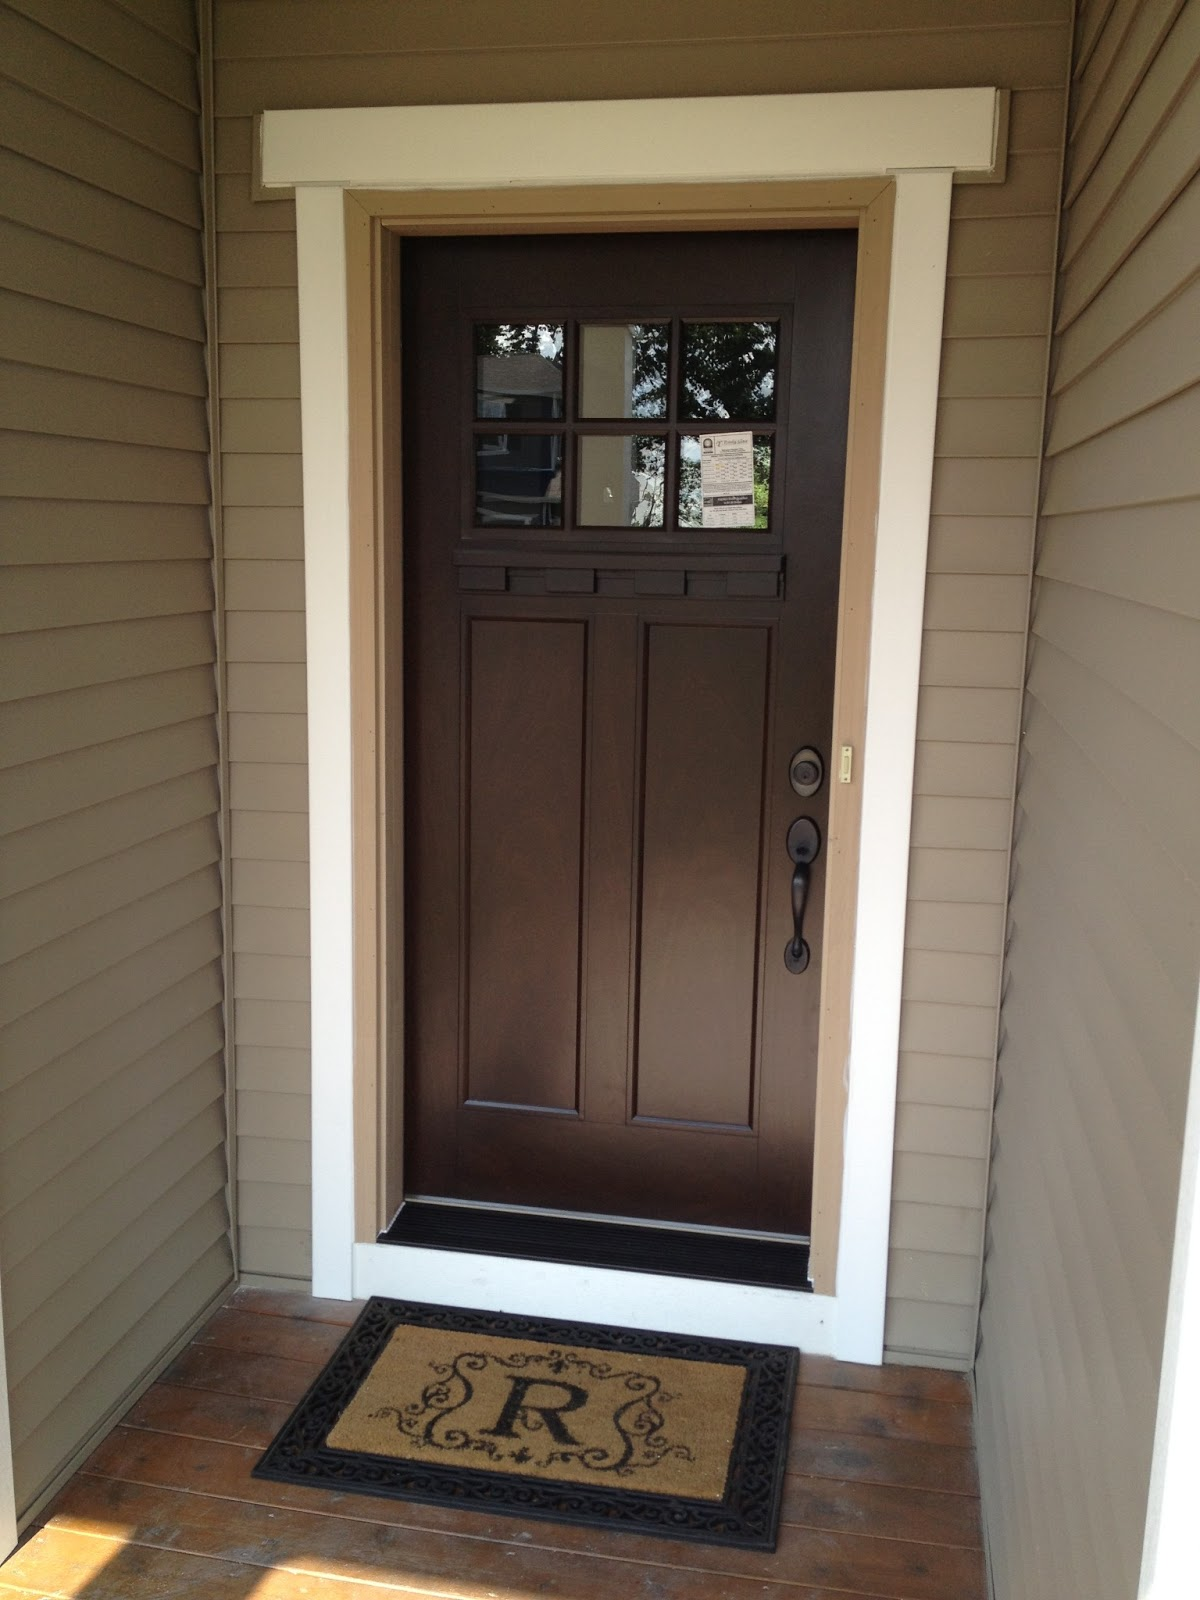 Our styled suburban life new front door Front door color ideas for beige house